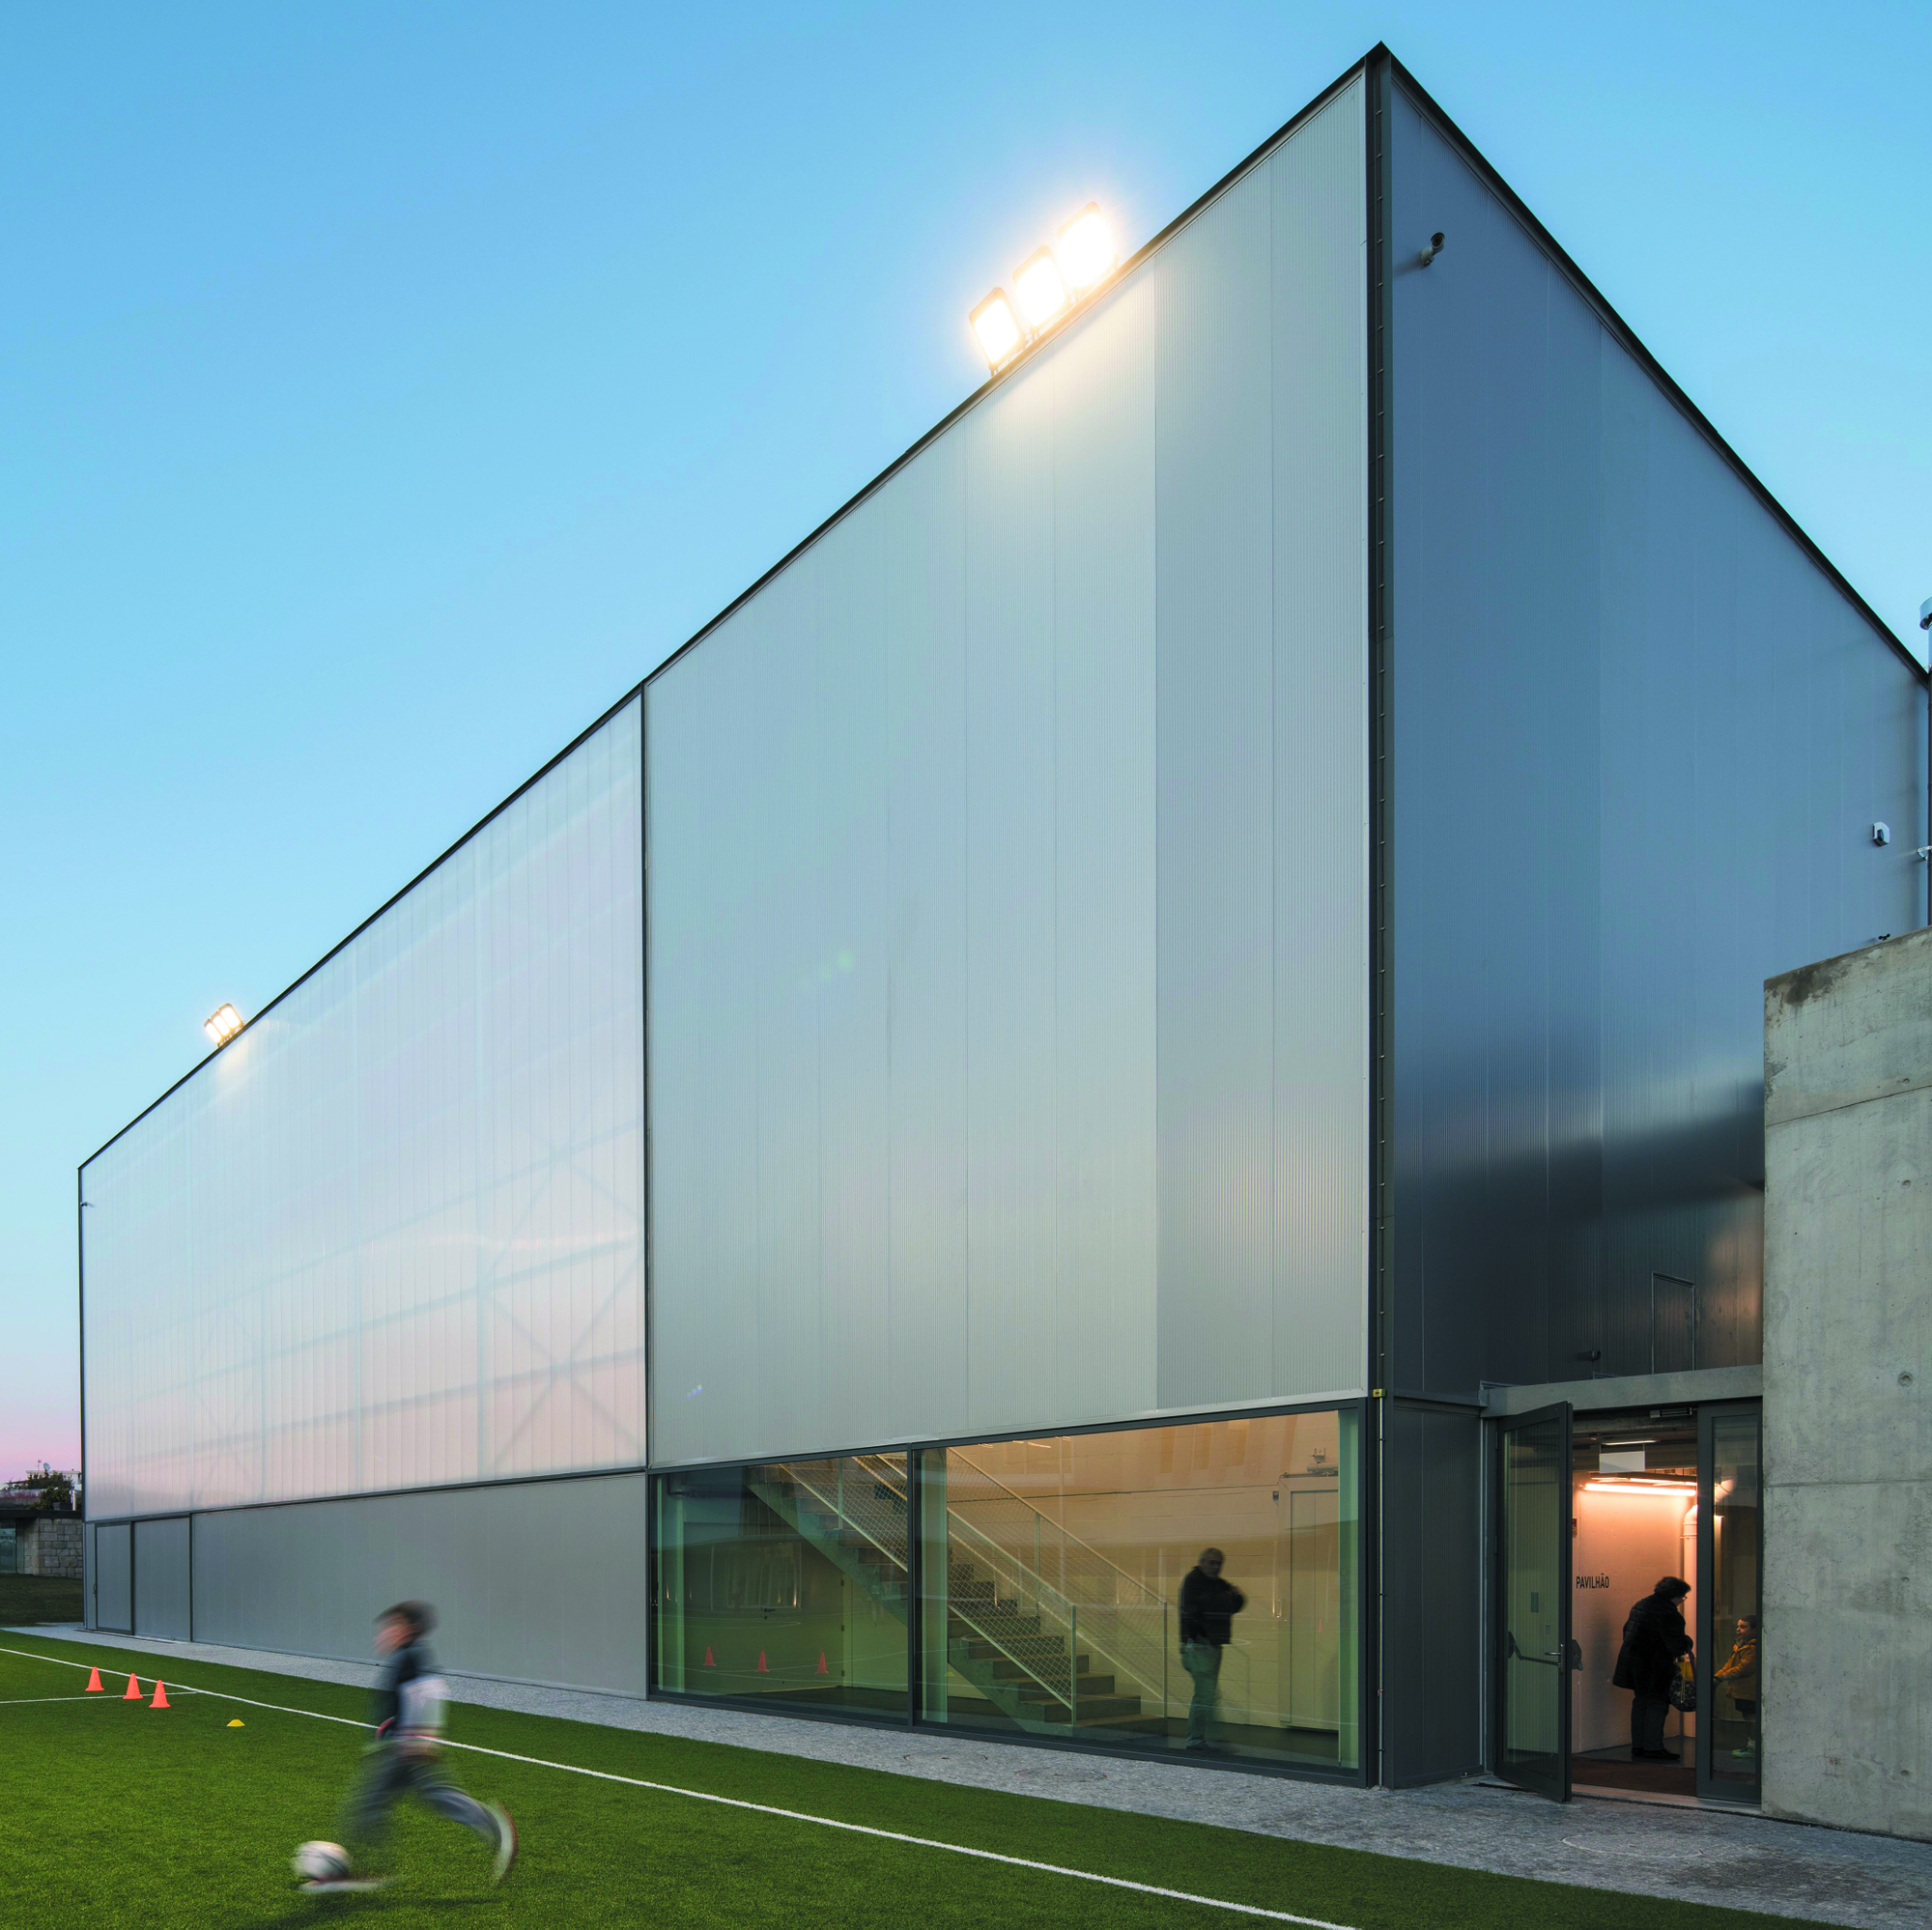 Elfanor Sports Centre, Matosinhos, Portugal - Image 5